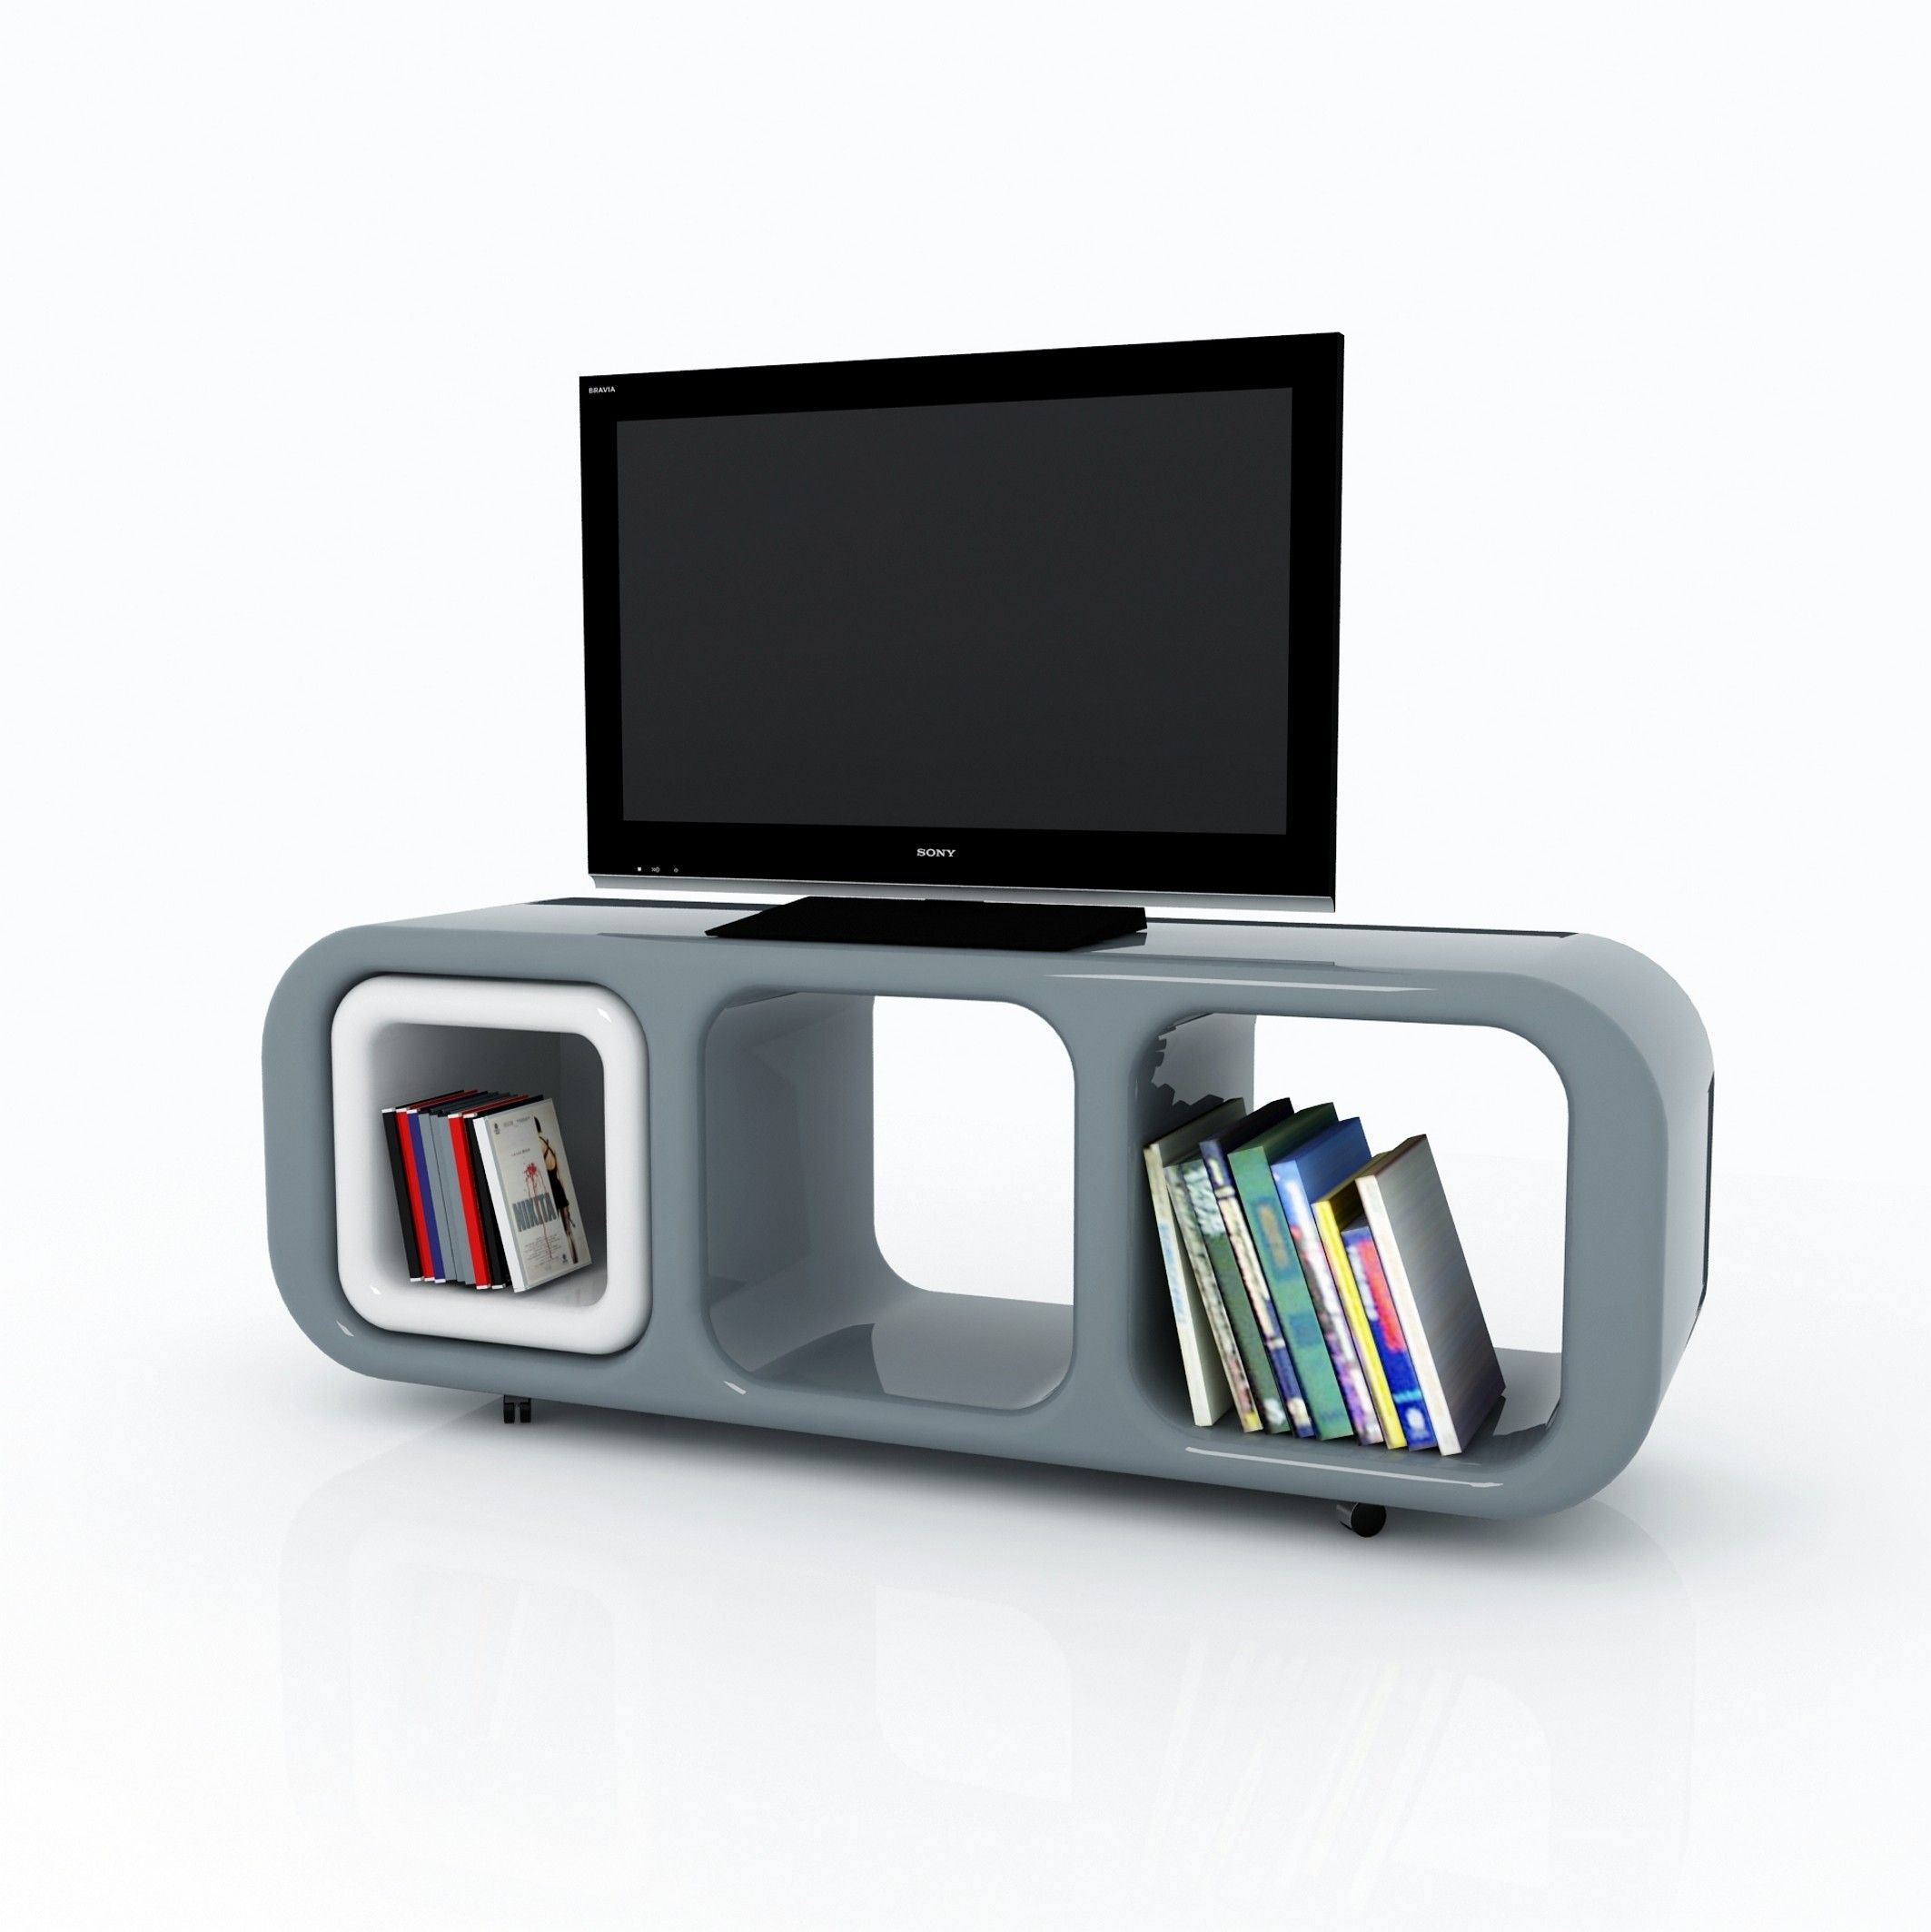 Mobile porta tv eracle design moderno su ruote in resina for Mobili design